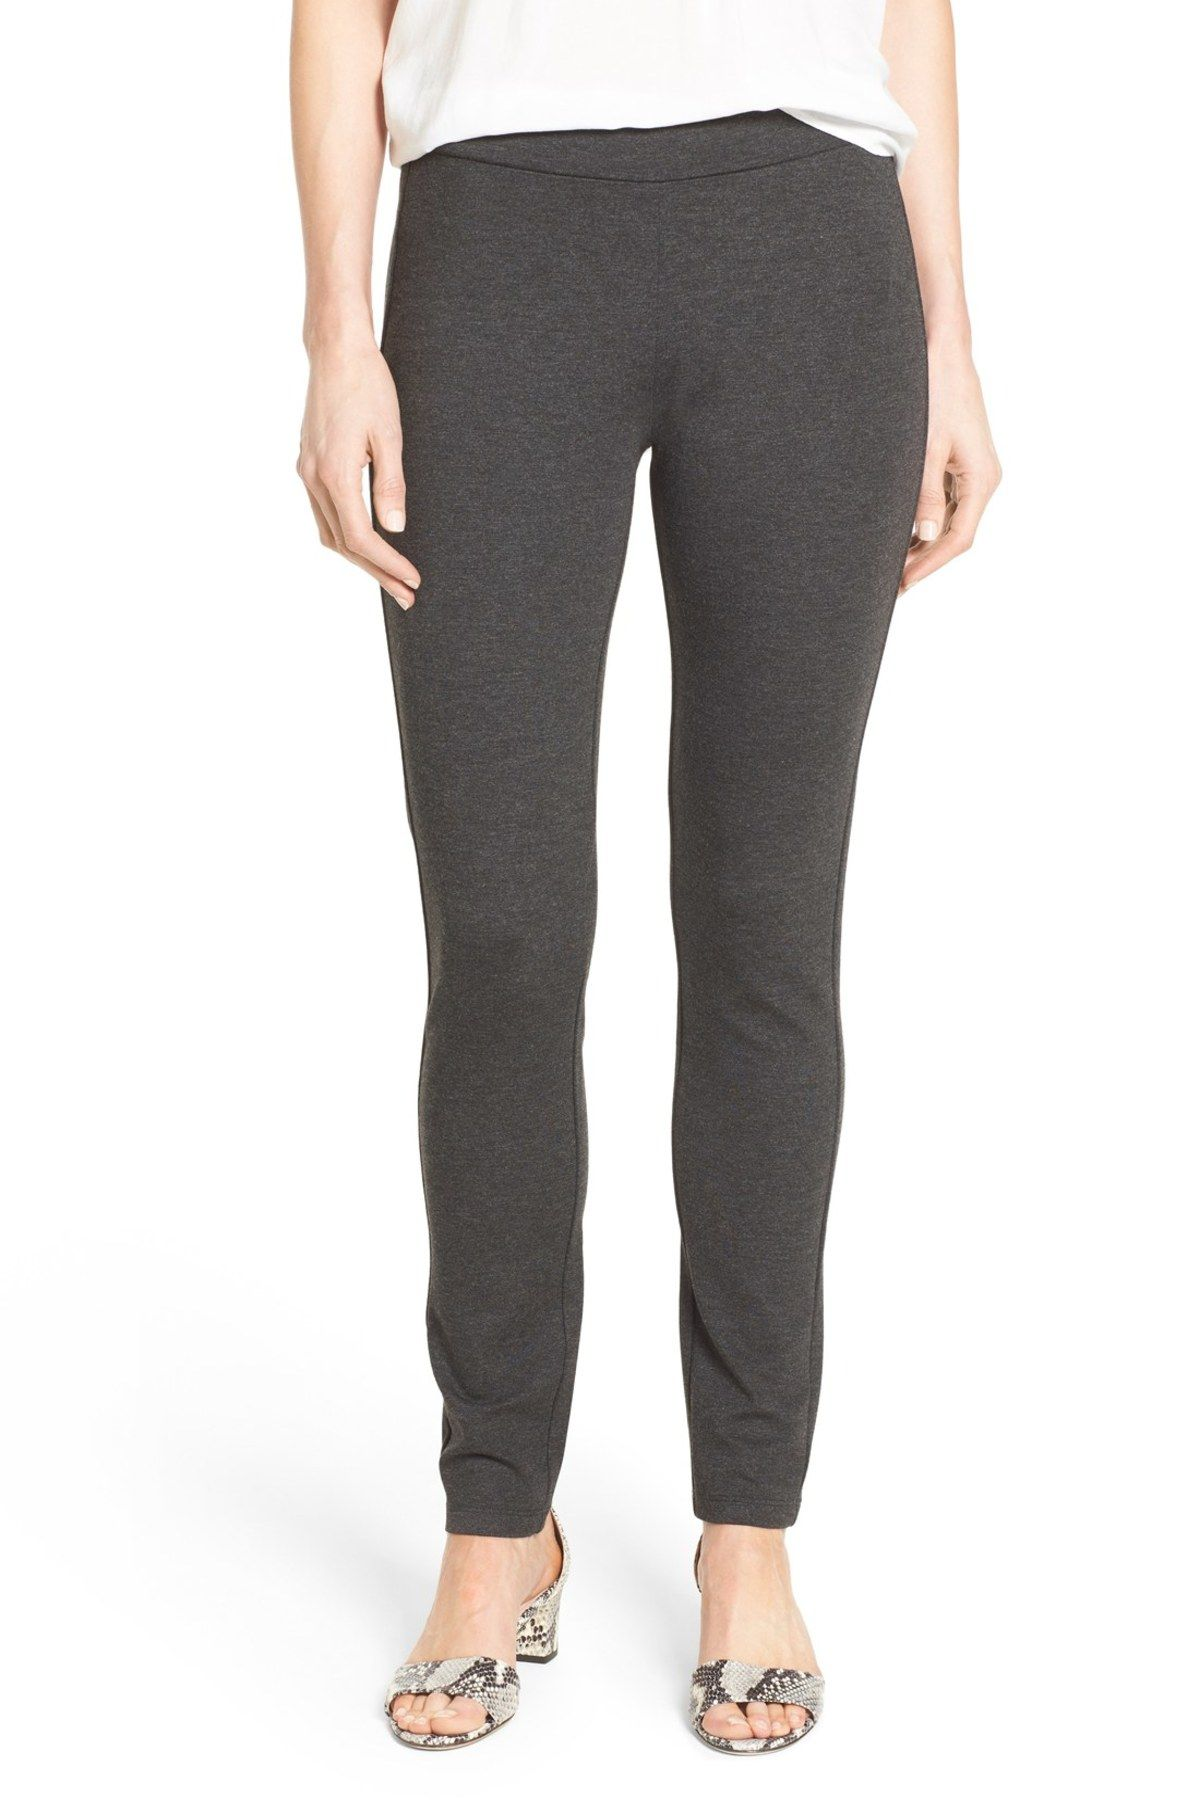 4ed8c0f905d LLD Bootcut Lounge Pants in 2019 | Things to Wear | Lounge pants, Pants, Yoga  Pants